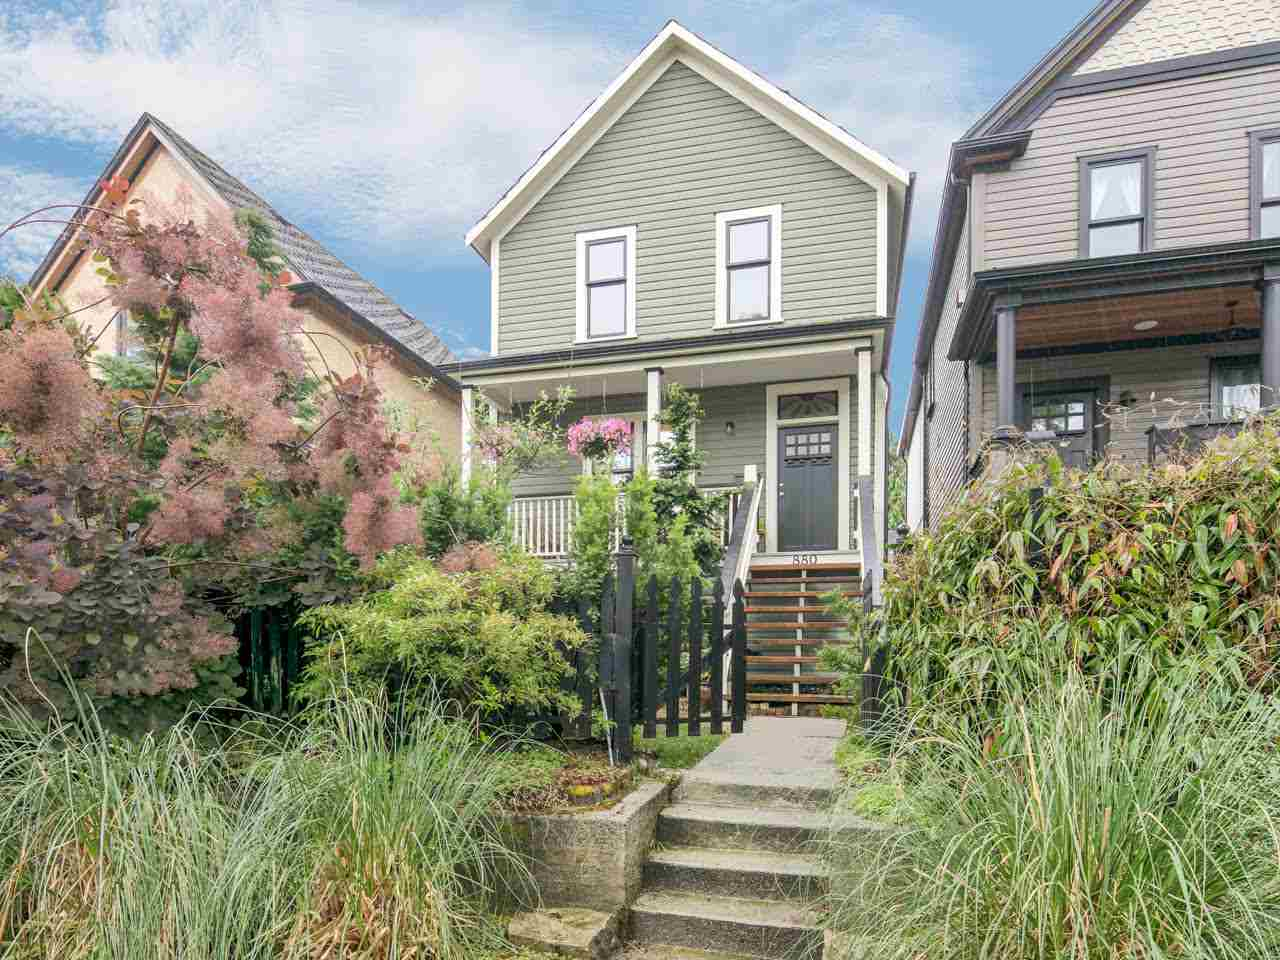 Main Photo: 880 KEEFER Street in Vancouver: Mount Pleasant VE House for sale (Vancouver East)  : MLS® # R2176389